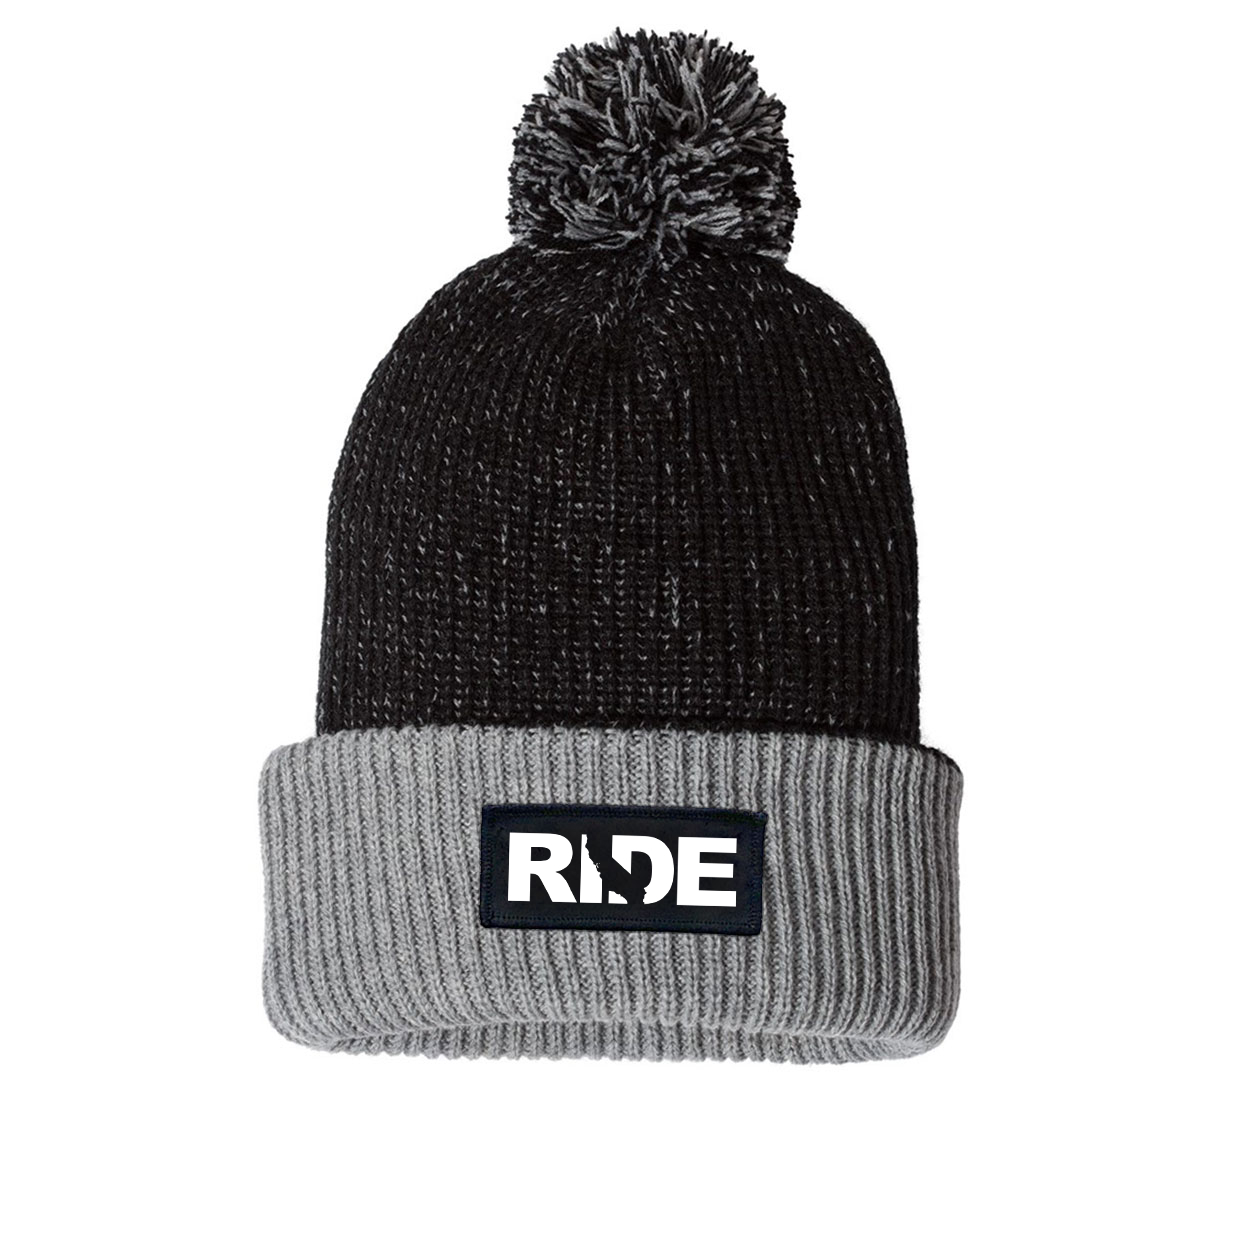 Ride California Night Out Woven Patch Roll Up Pom Knit Beanie Black/Gray (White Logo)